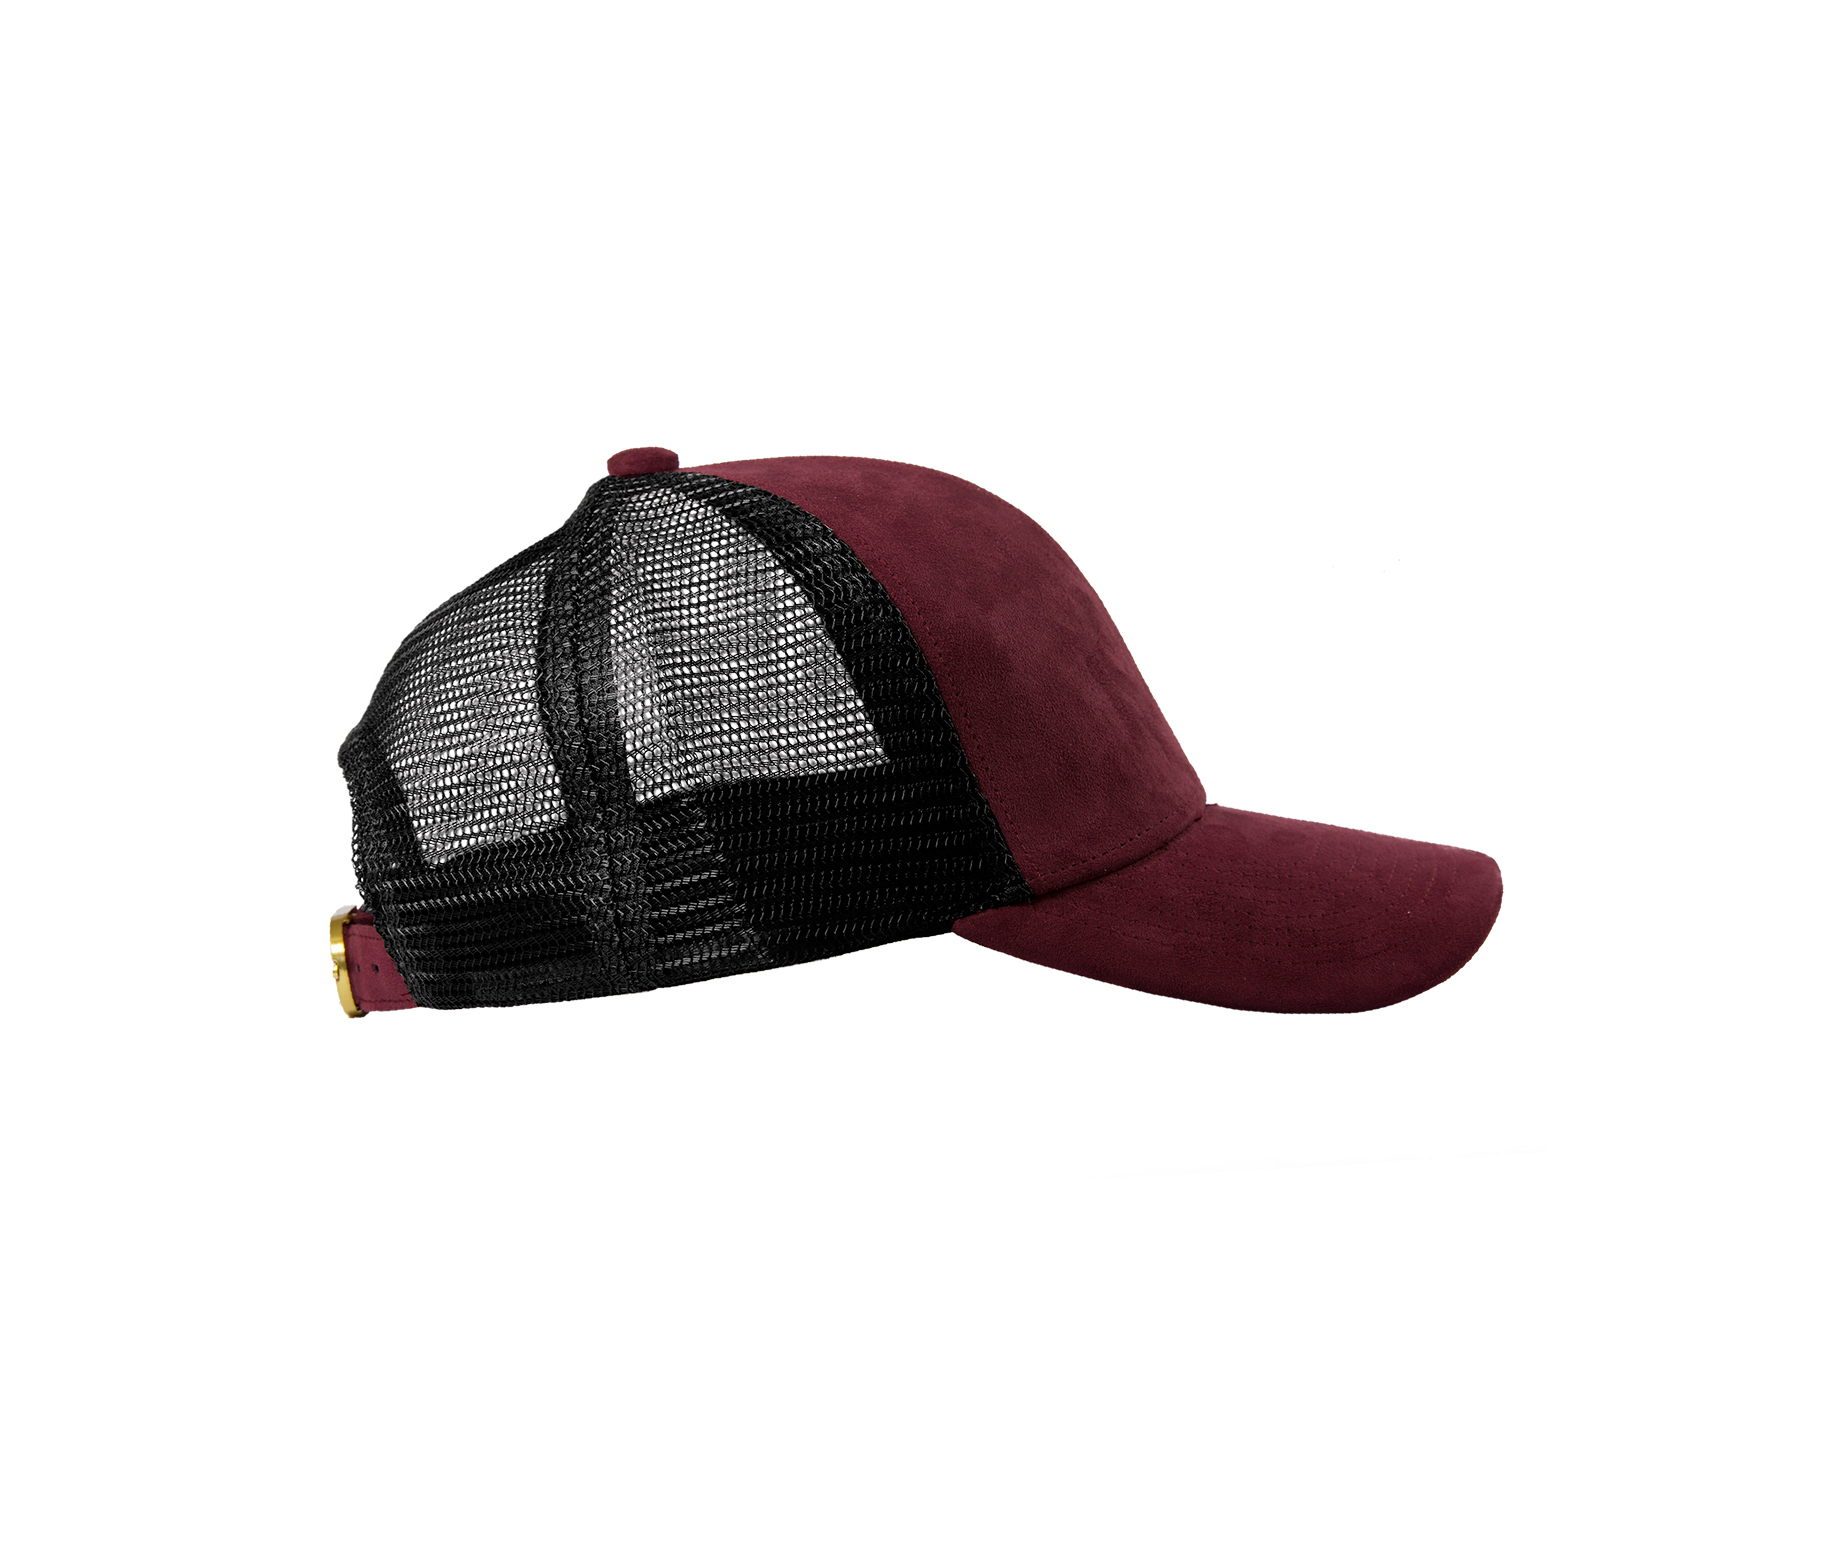 TRUCKER CAP BORDEAUX SUEDE SIDE